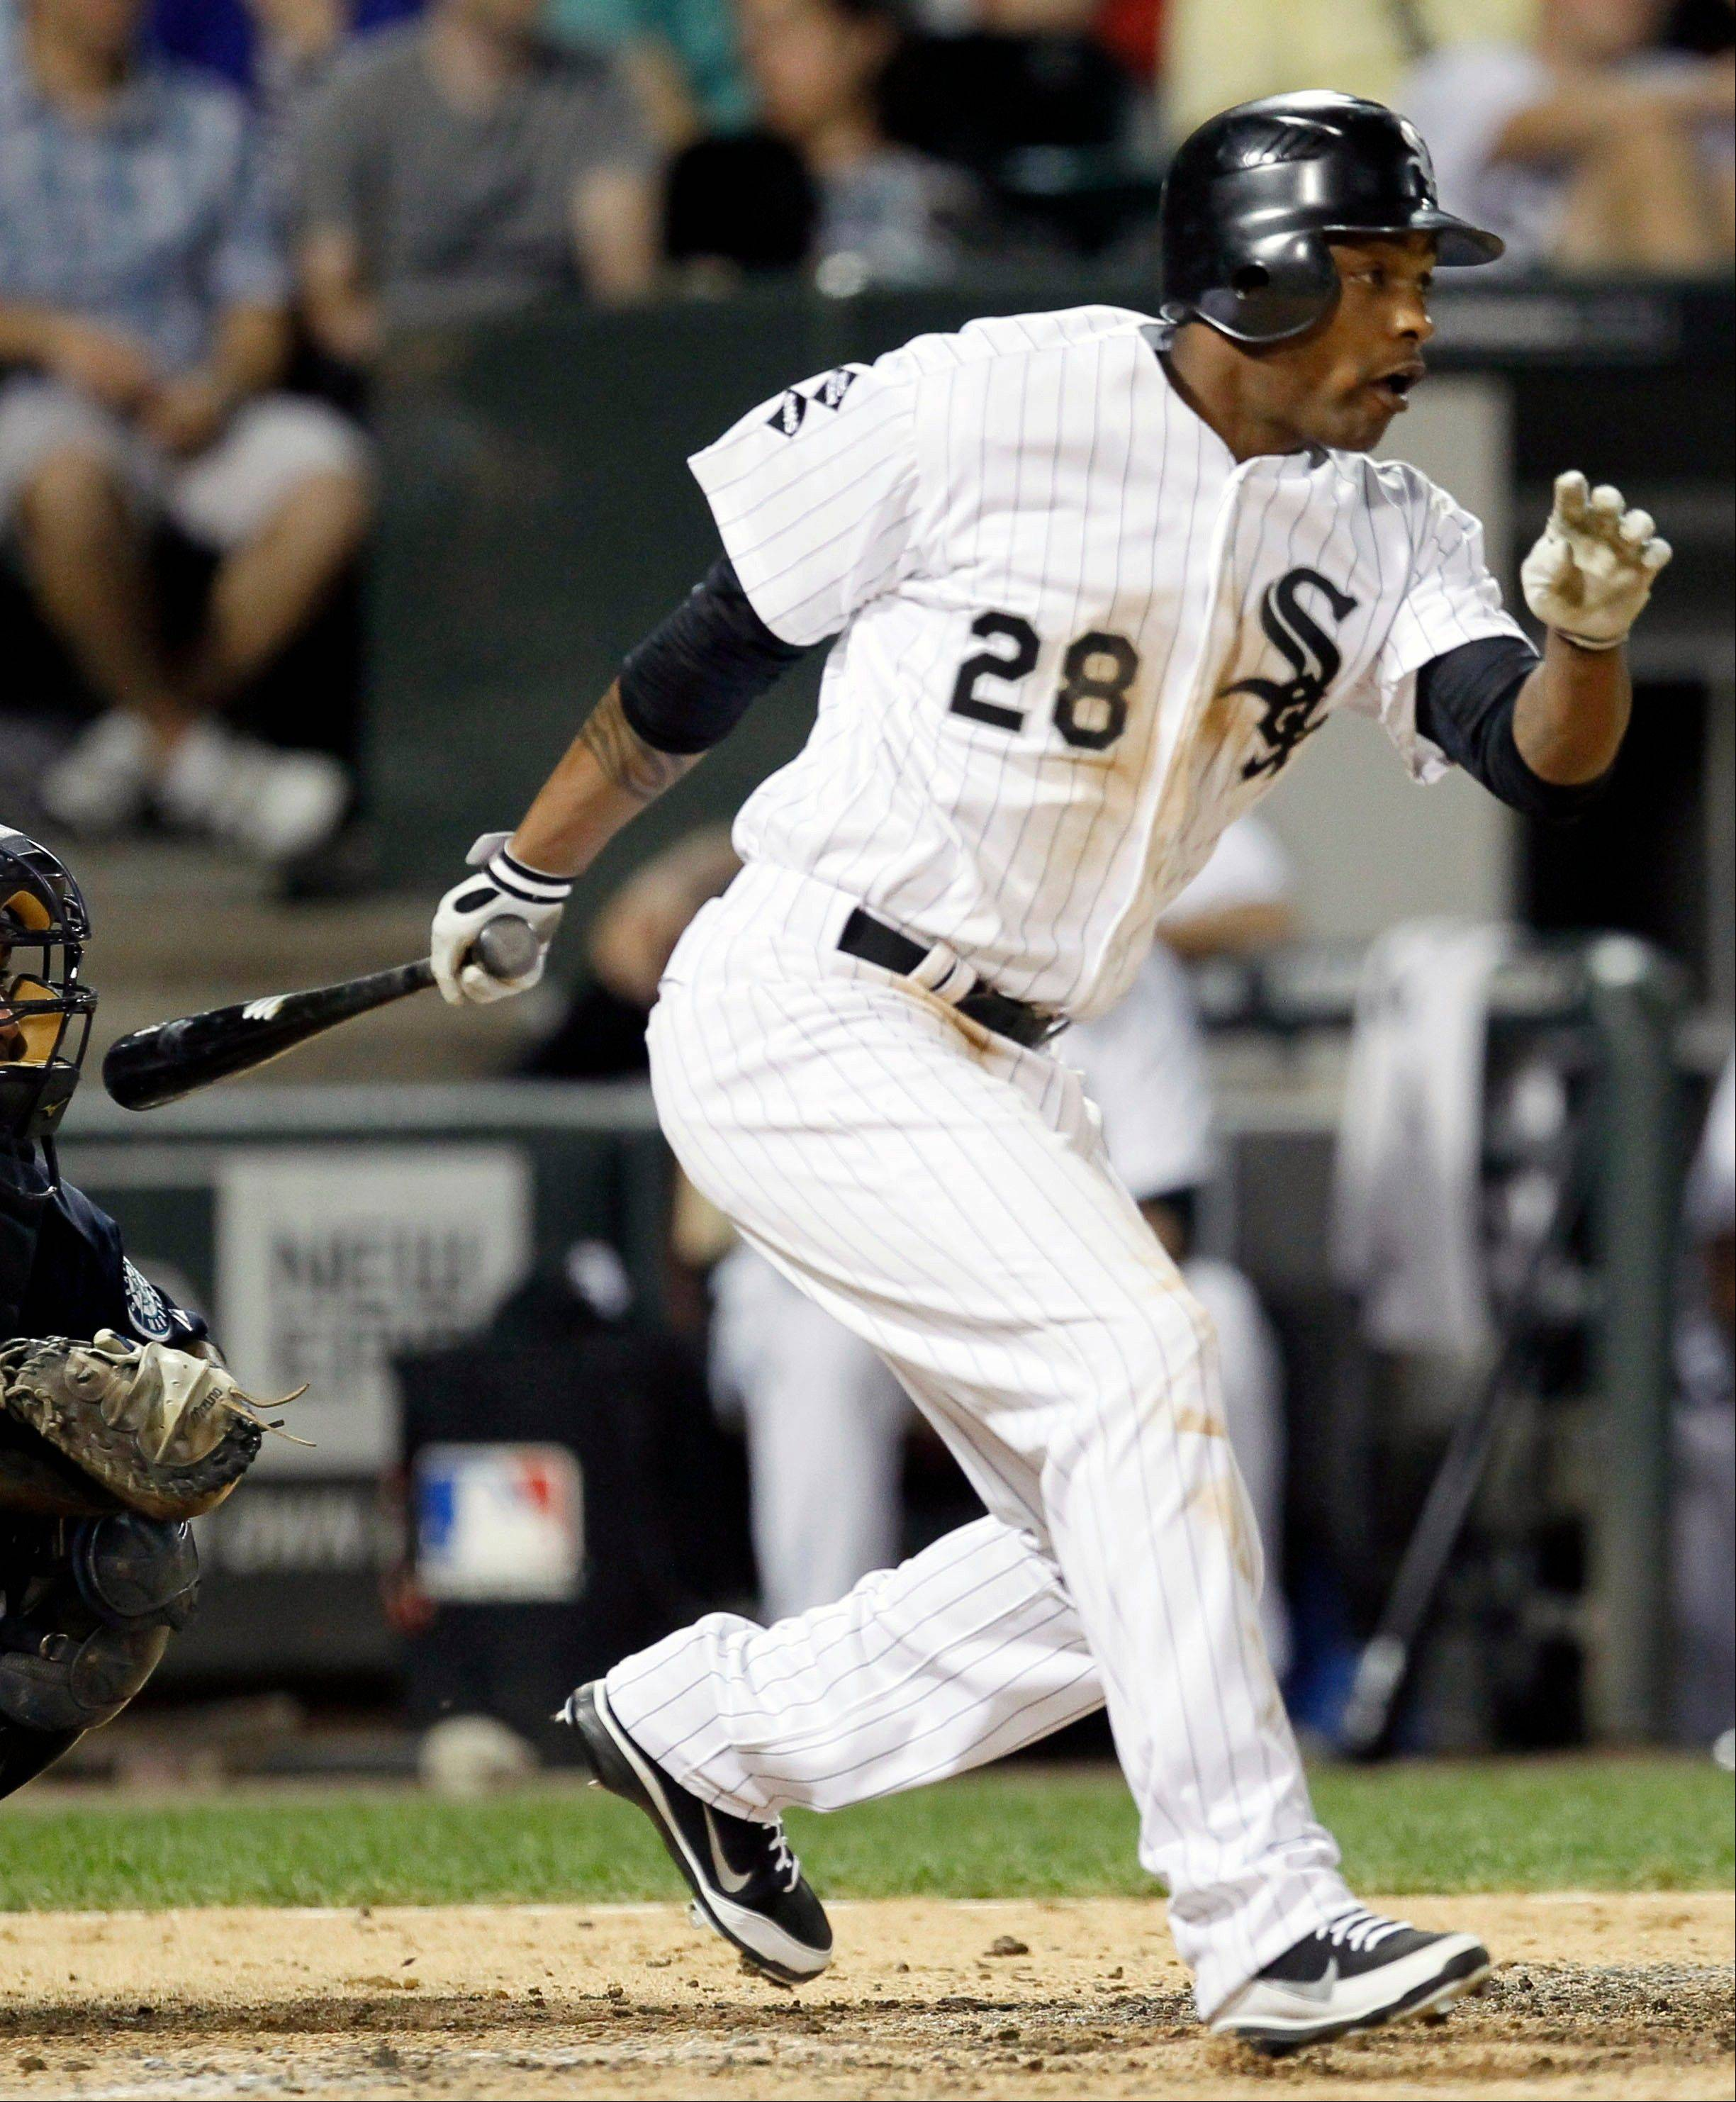 Chicago White Sox's Dewayne Wise hits an RBI-single, scoring Alexei Ramirez and breaking a 3-3 tie, off Seattle Mariners relief pitcher Charlie Furbush during the sixth inning of a baseball game on Saturday, Aug. 25, 2012, in Chicago.